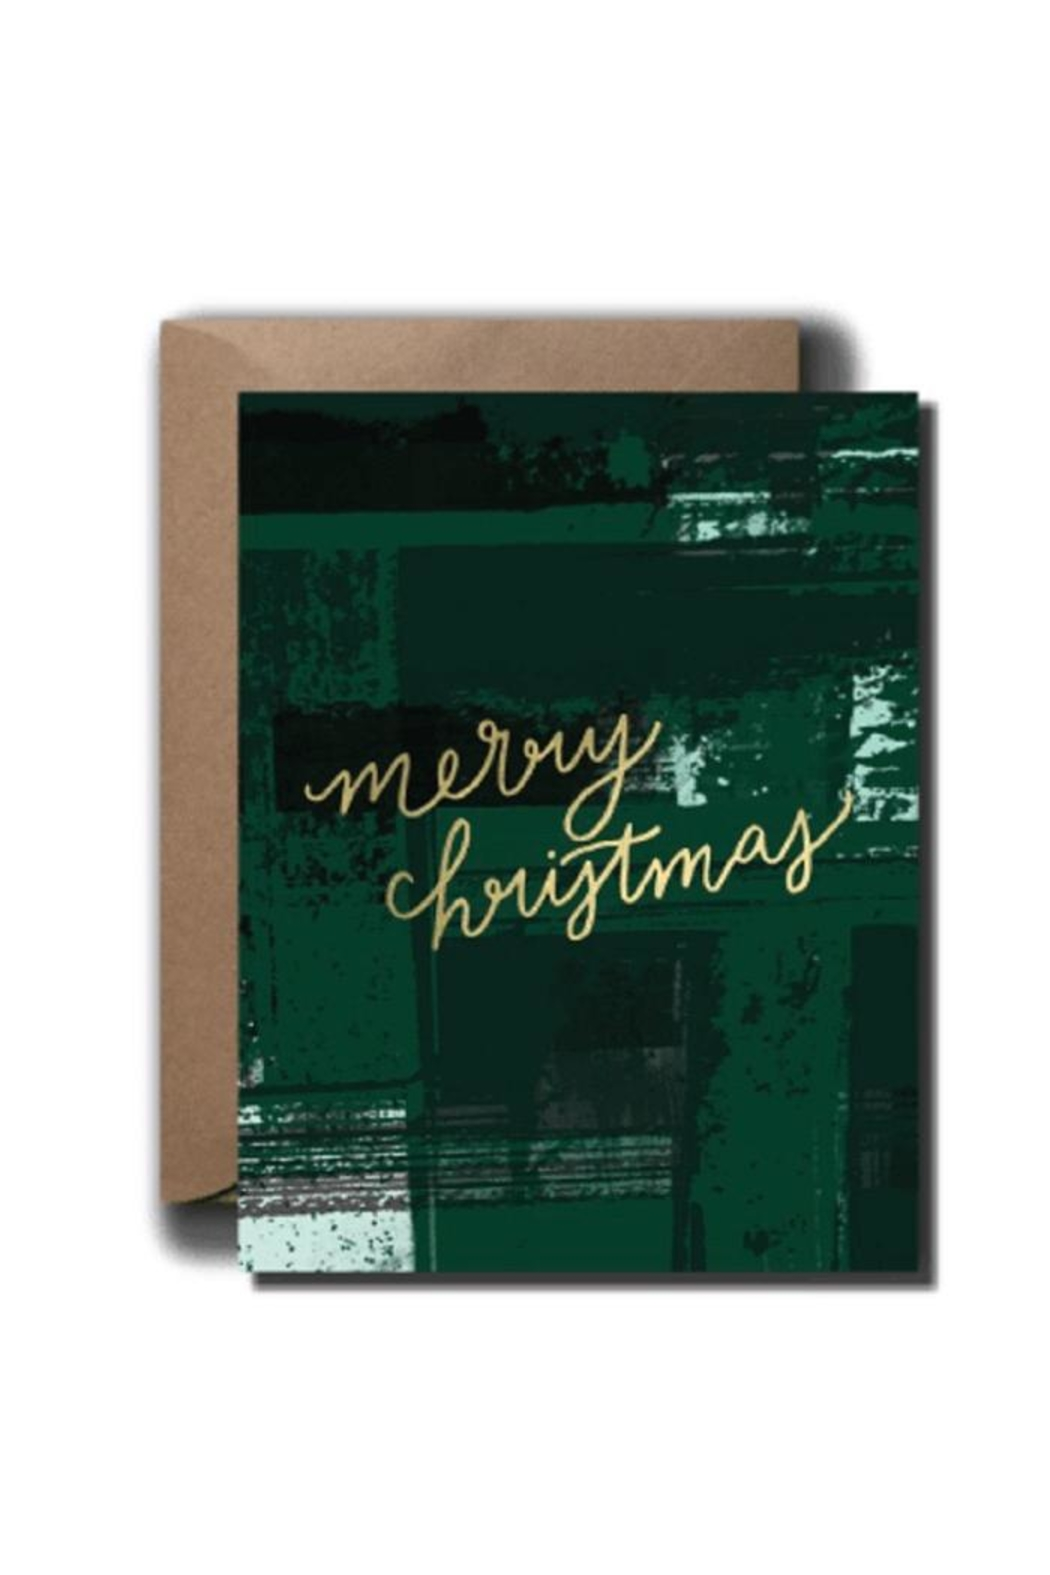 Black Lab Studio Abstract Christmas Card from Ohio by Chic Chateau ...